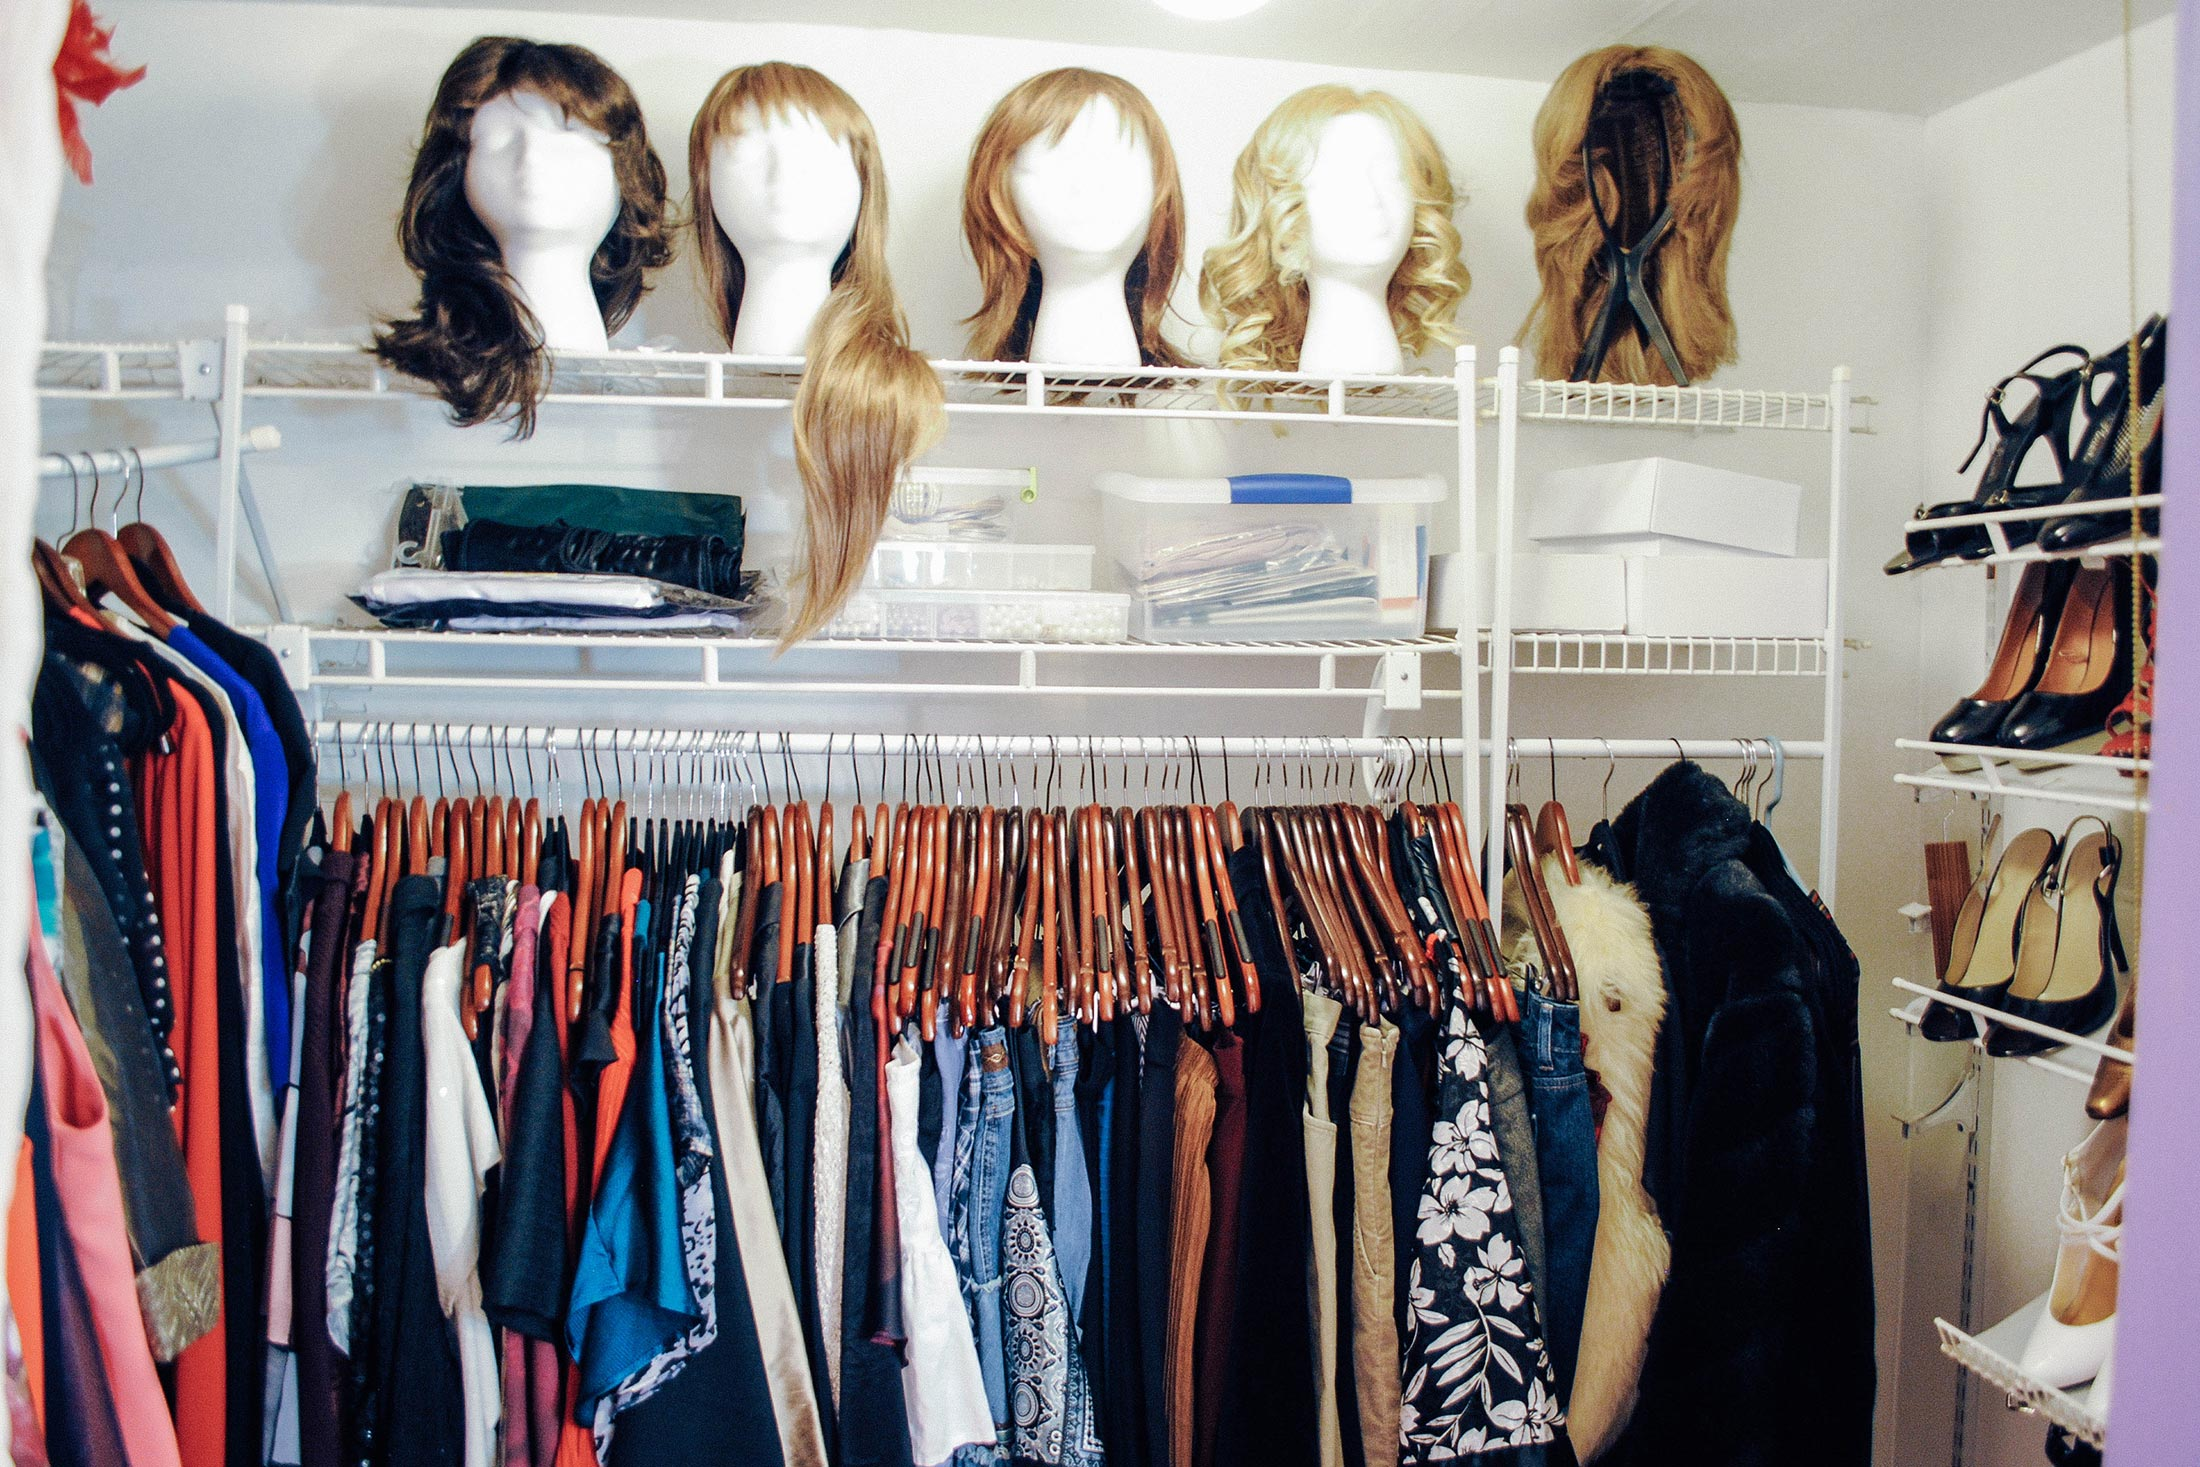 A closet containing women's clothing, wigs, and shoes.